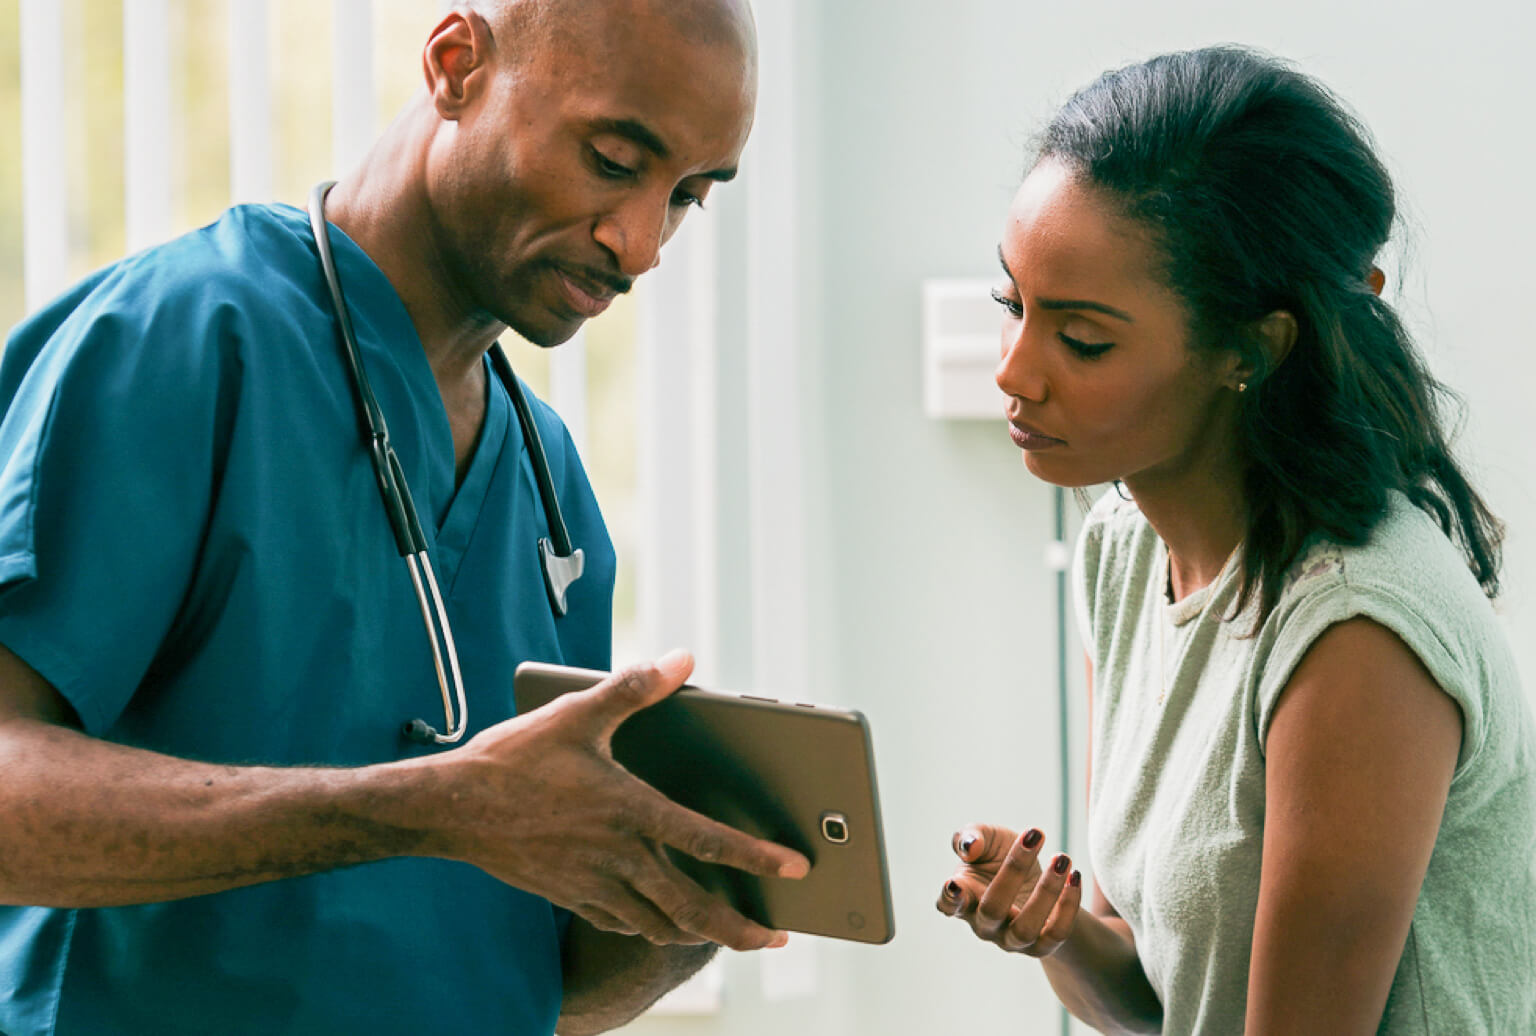 A CNA wearing a stethoscope shows a patient information on a tablet.